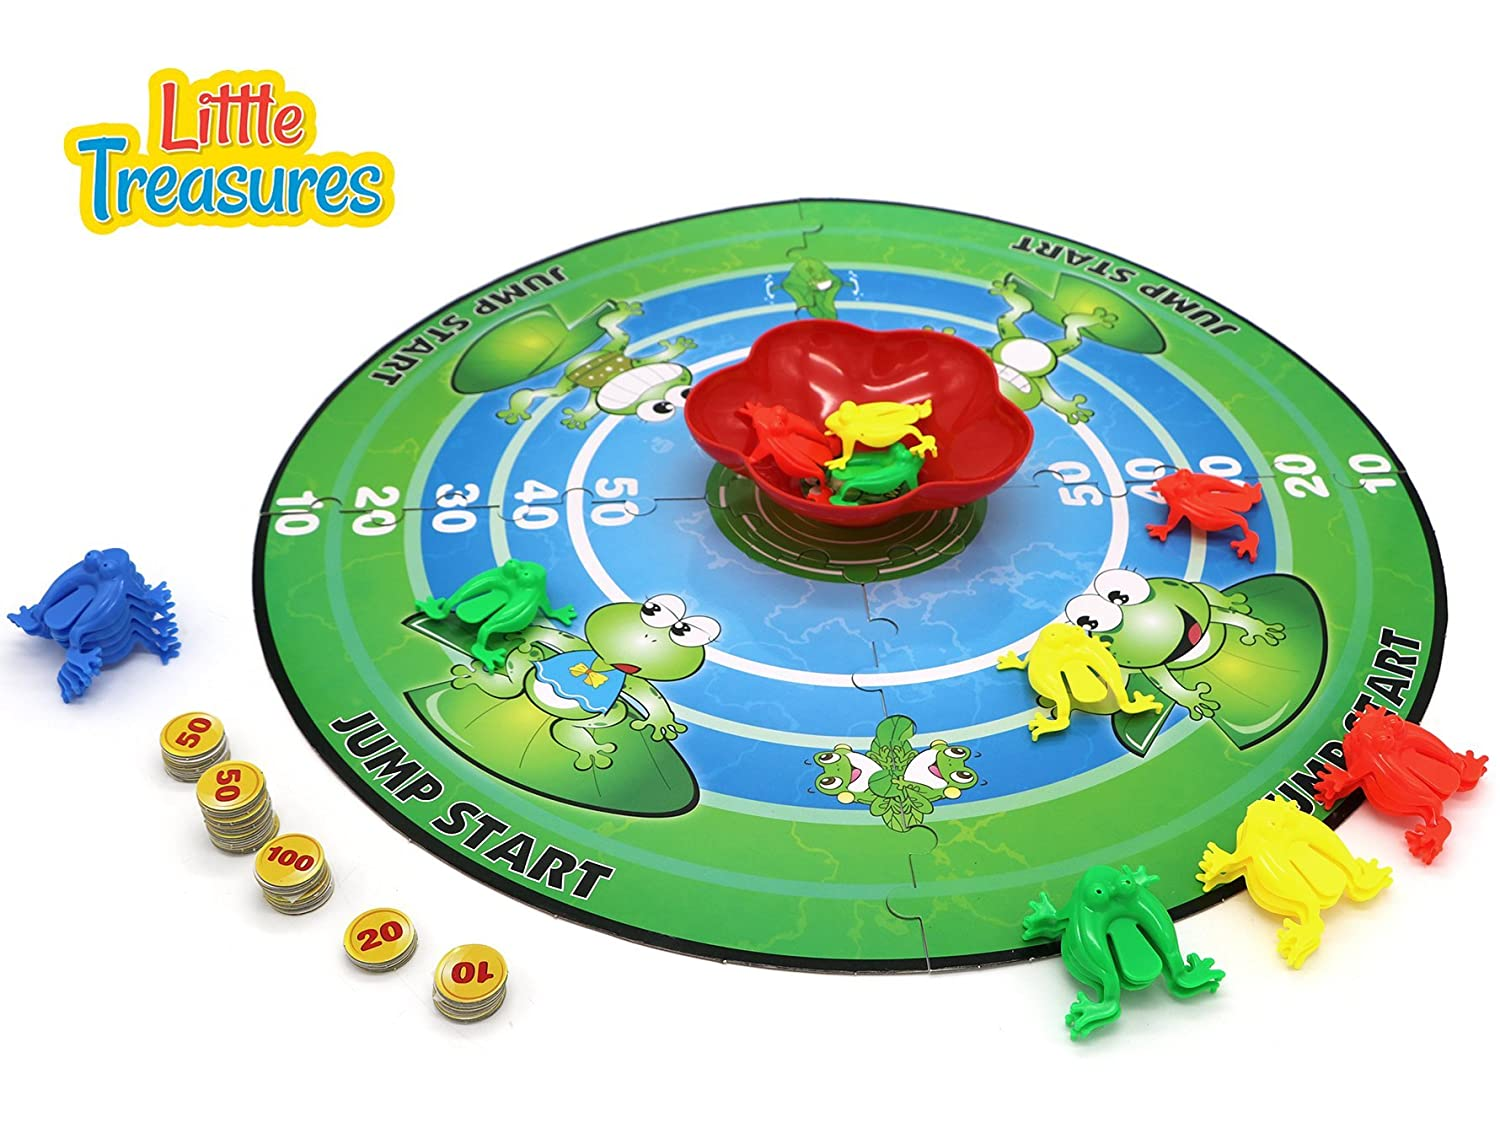 e49d8eff7c36 Amazon.com  Little Treasures Jumping Frog Board Bame  Toys   Games